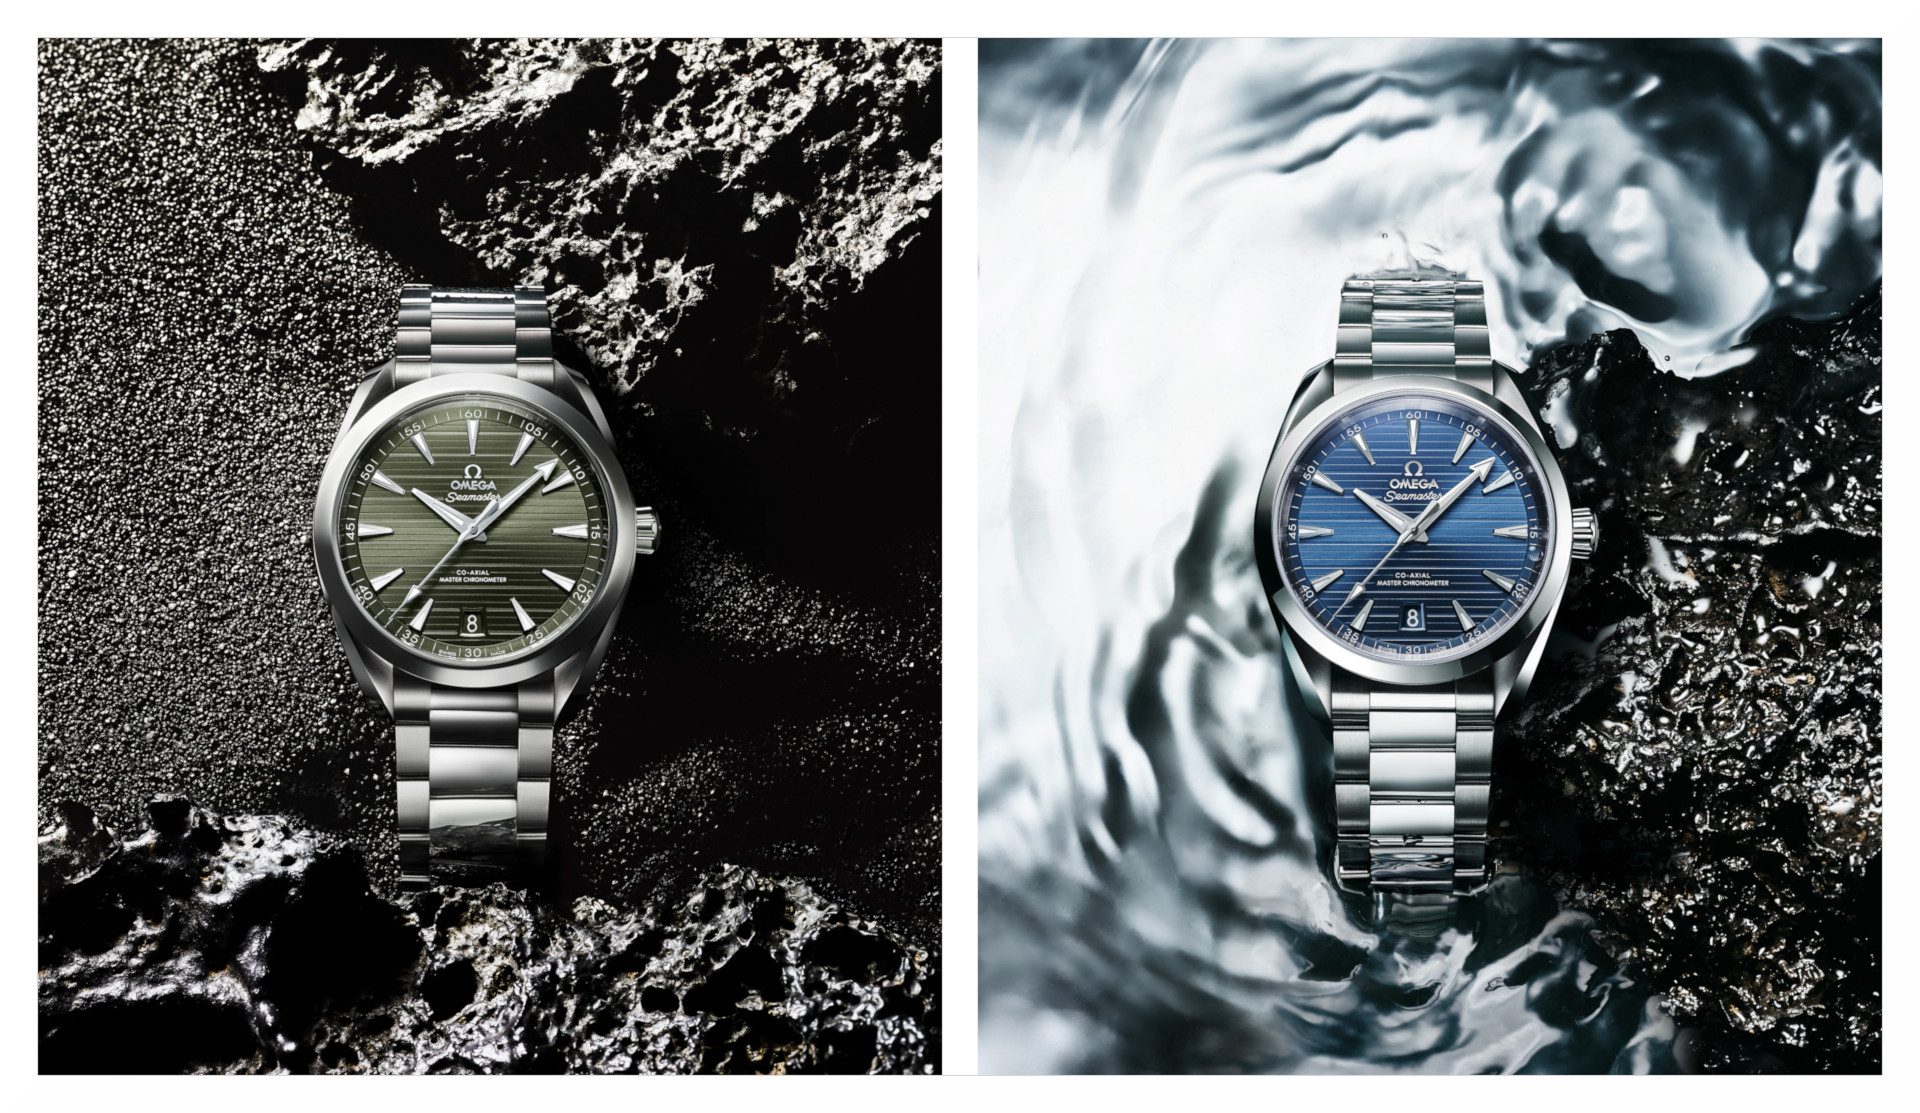 New colours available in 2020 for the Omega Seamaster Aqua Terra 150M